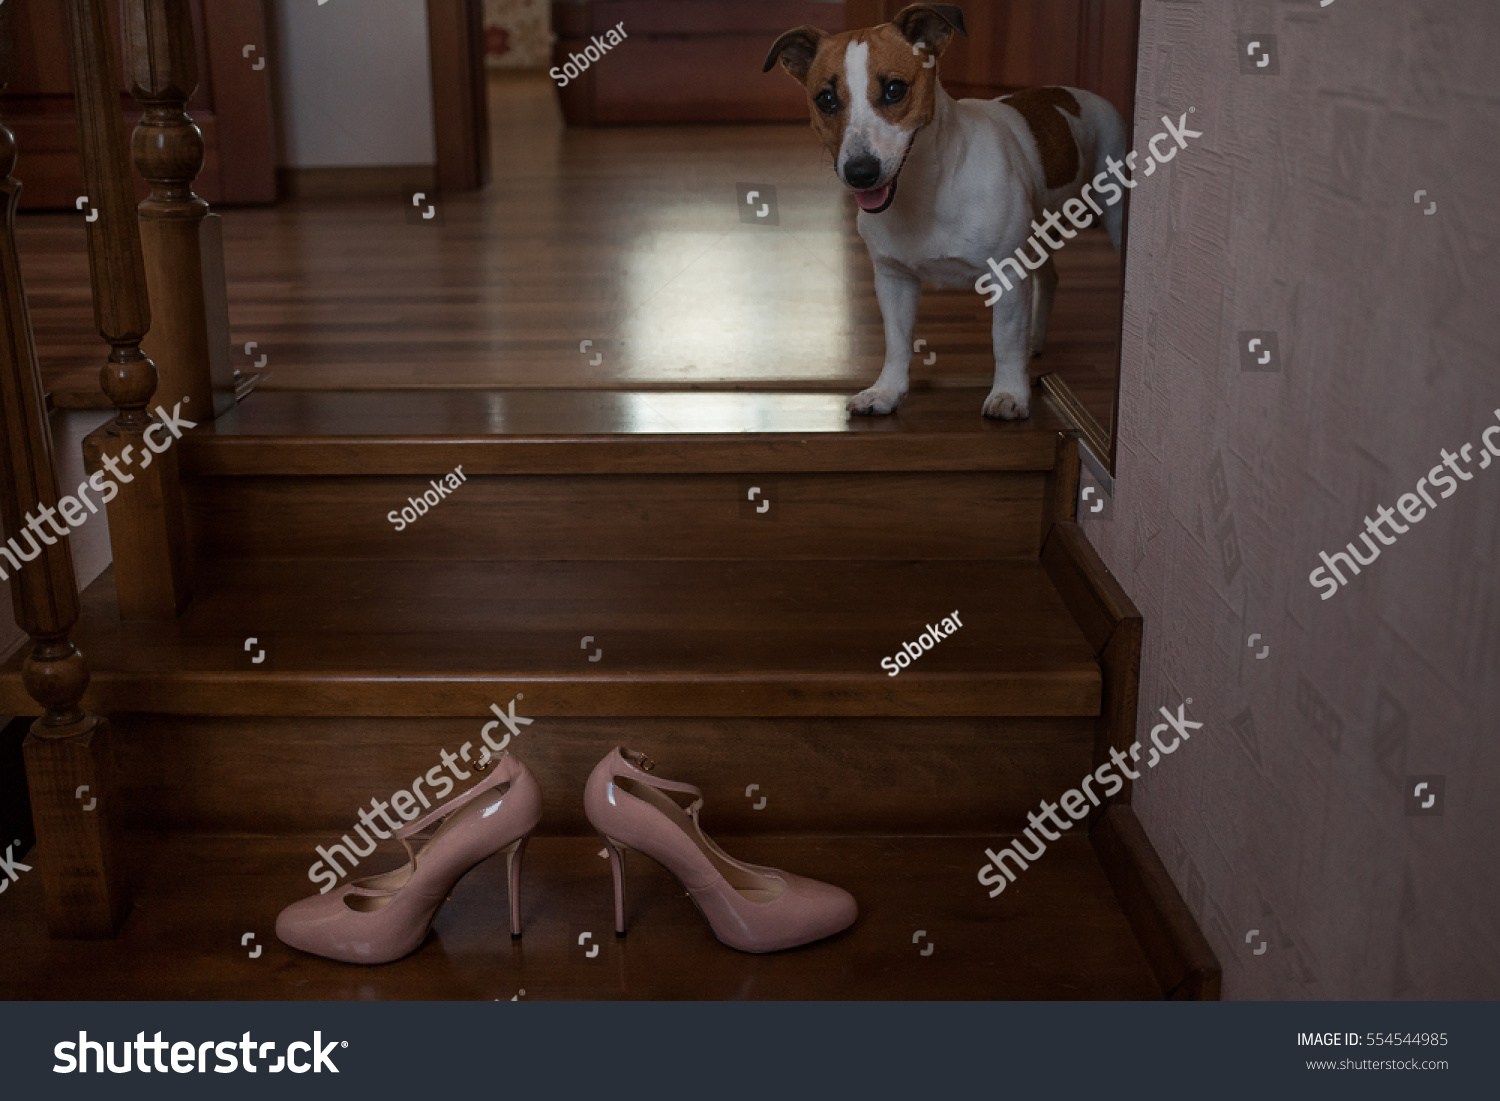 Cute Little Dog Sitting Near Bride Stock Photo 554544985 ...